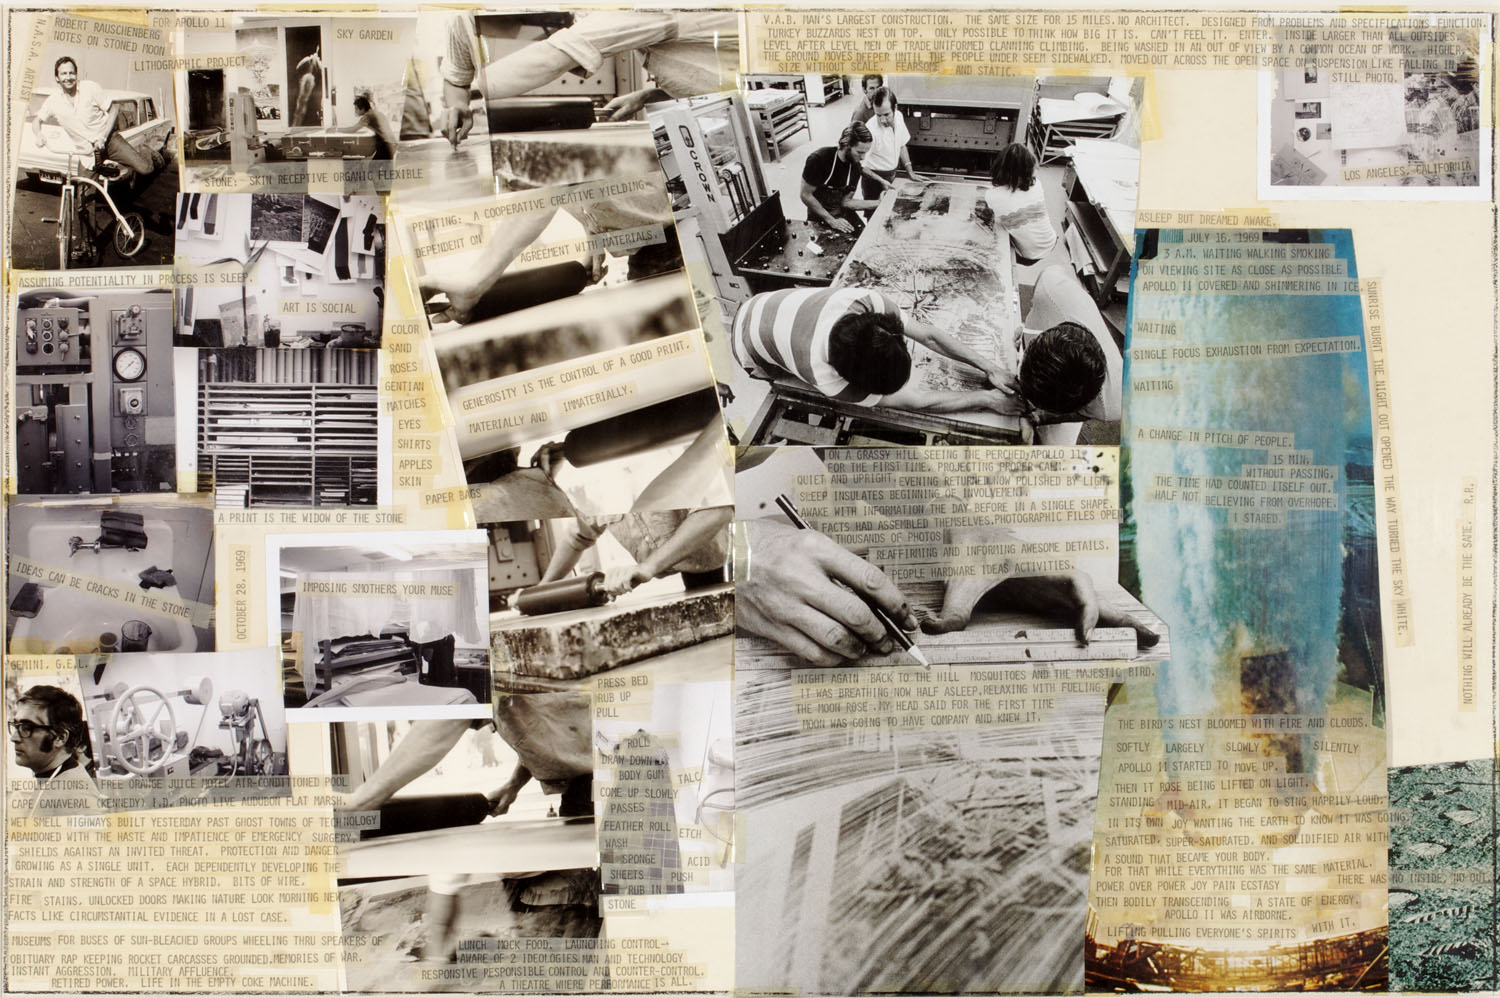 robert rauschenberg 1 september 2007 – 27 january 2008 beauty is now underfoot wherever we take the trouble to look 1 robert rauschenberg has had an extensive impact on late twentieth-century visual culture.